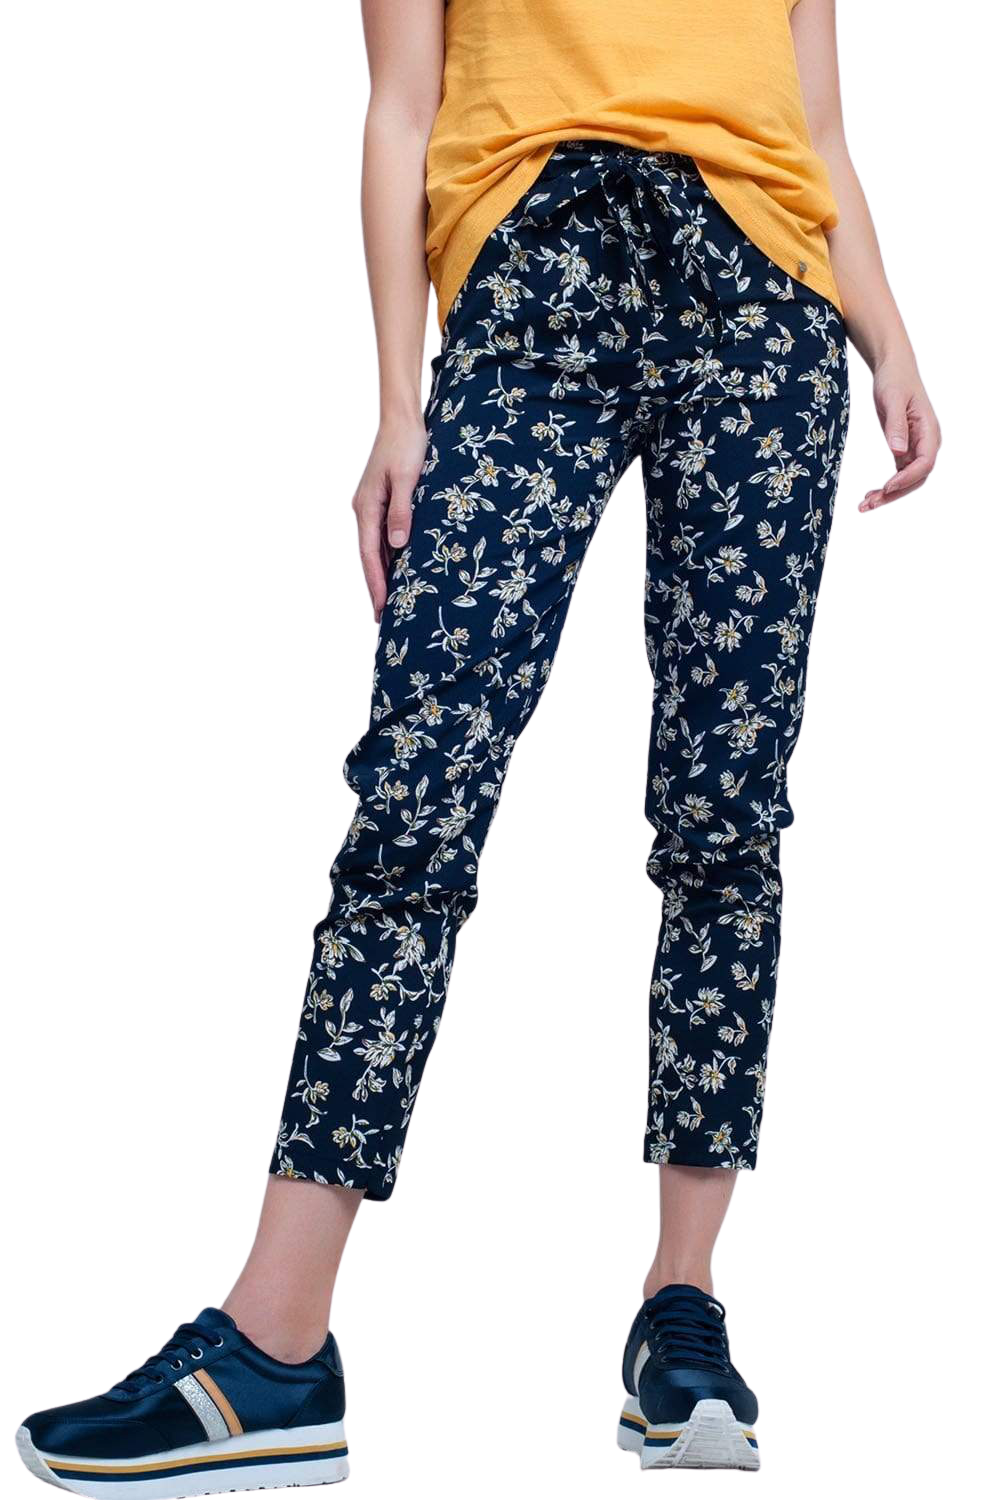 Navy Floral Pants With a Belt - The Maddy